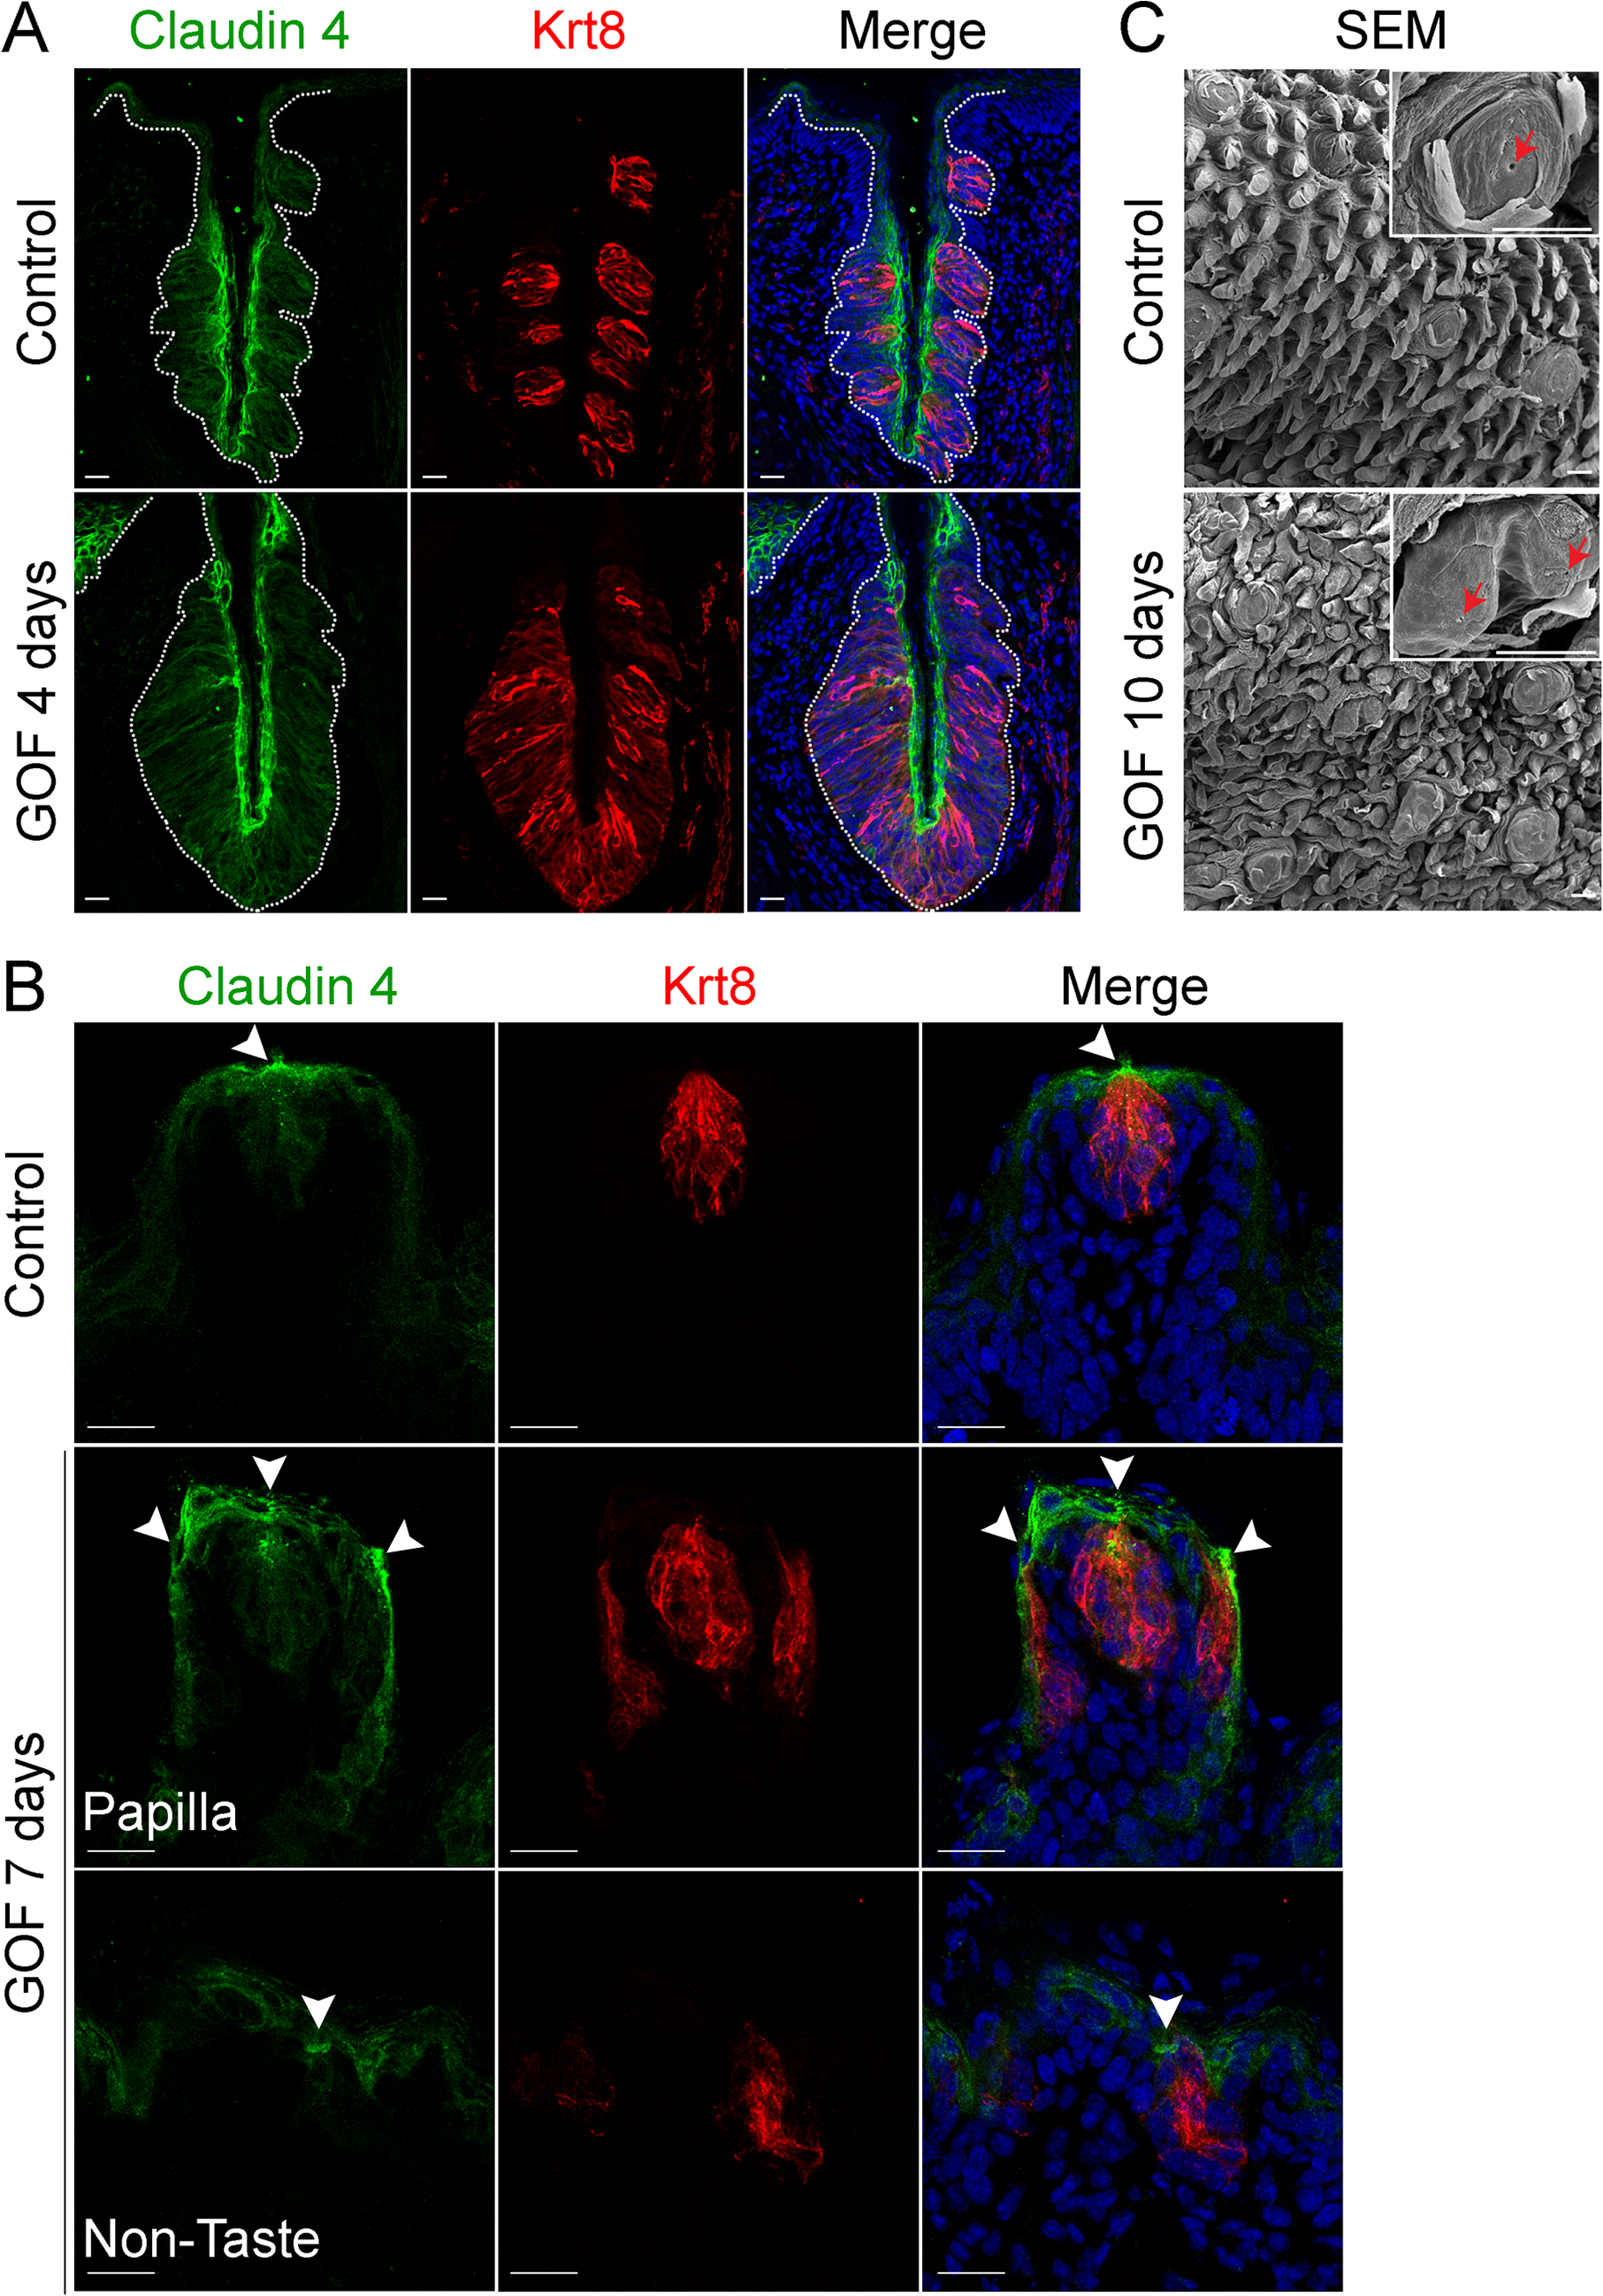 Expression of Claudin4 and evidence of taste pores suggests appropriate cell contacts are induced and maintained in mutant taste buds with stabilized β-catenin.